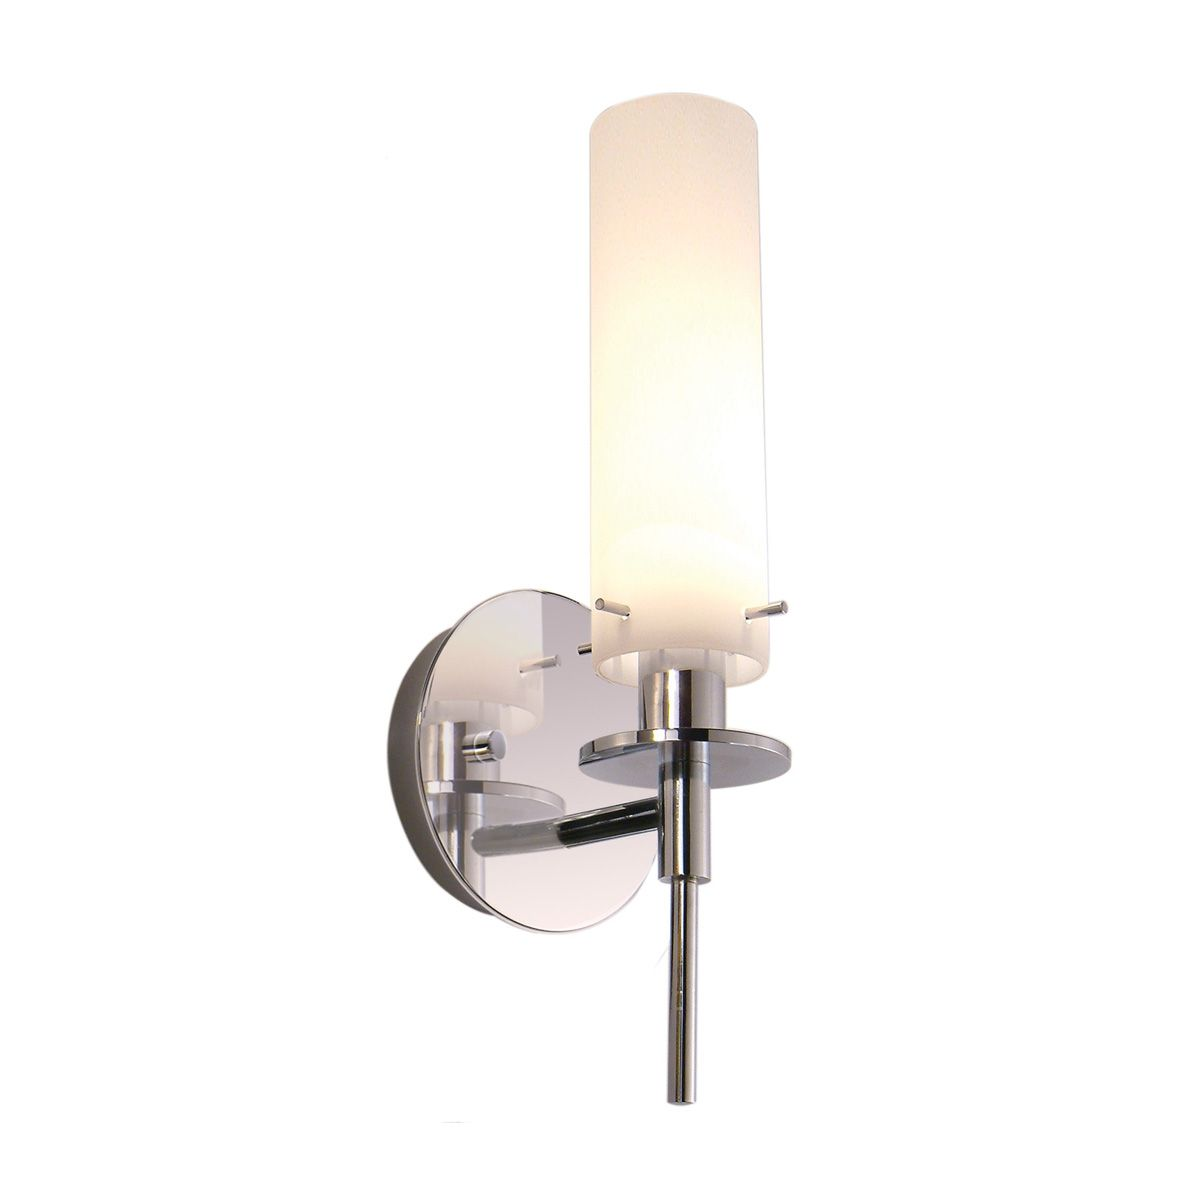 Chrome Candle Wall Sconce